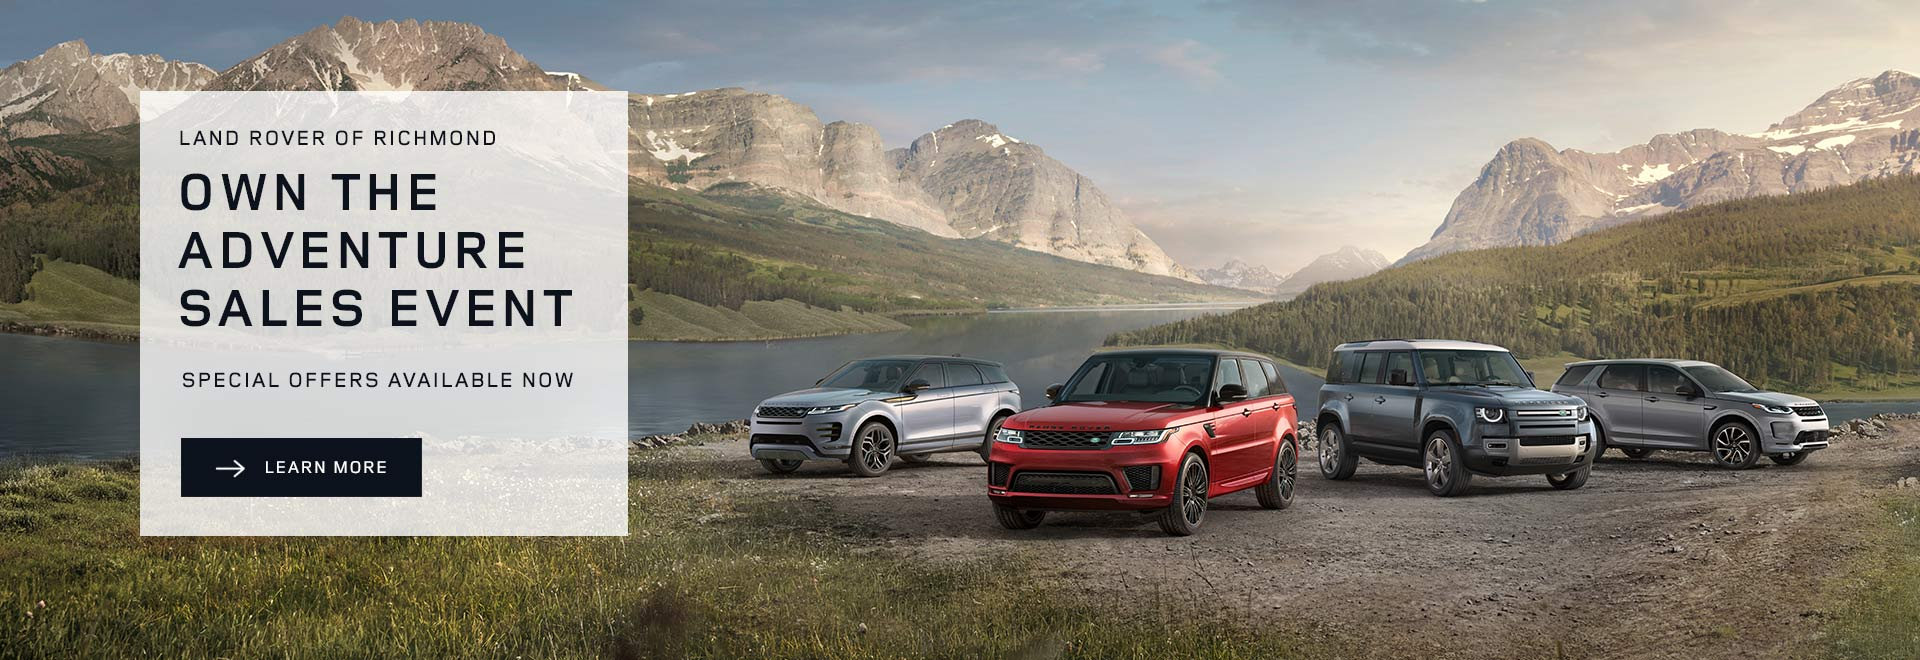 Land Rover of Richmond - Own The Adventure Sale Event